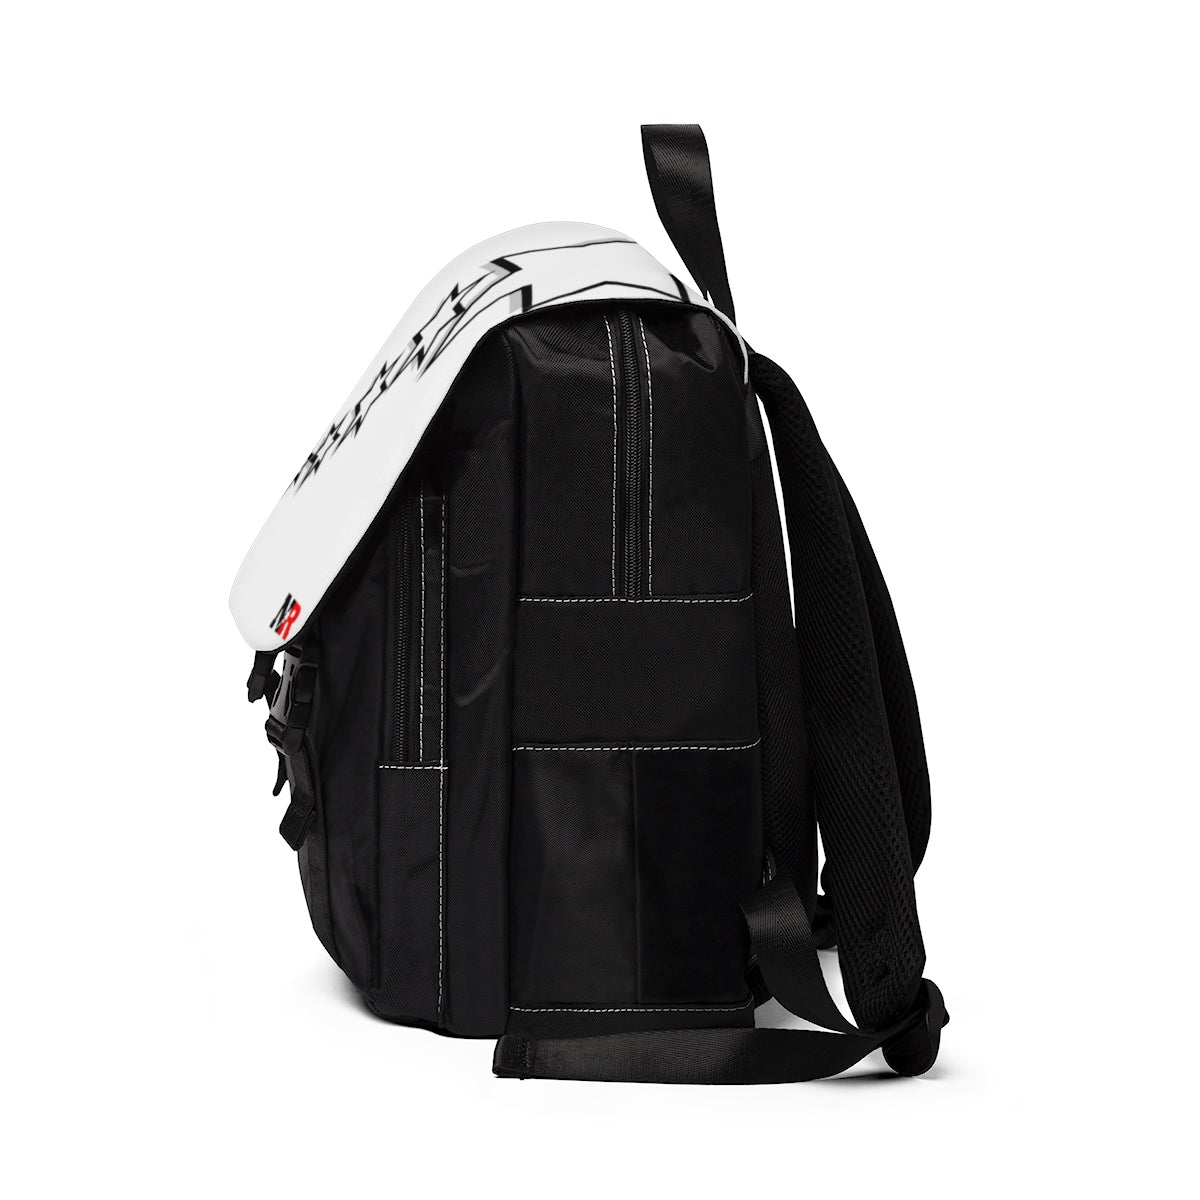 Unisex Casual Shoulder Backpack - 6 Points 5 Stars (White)